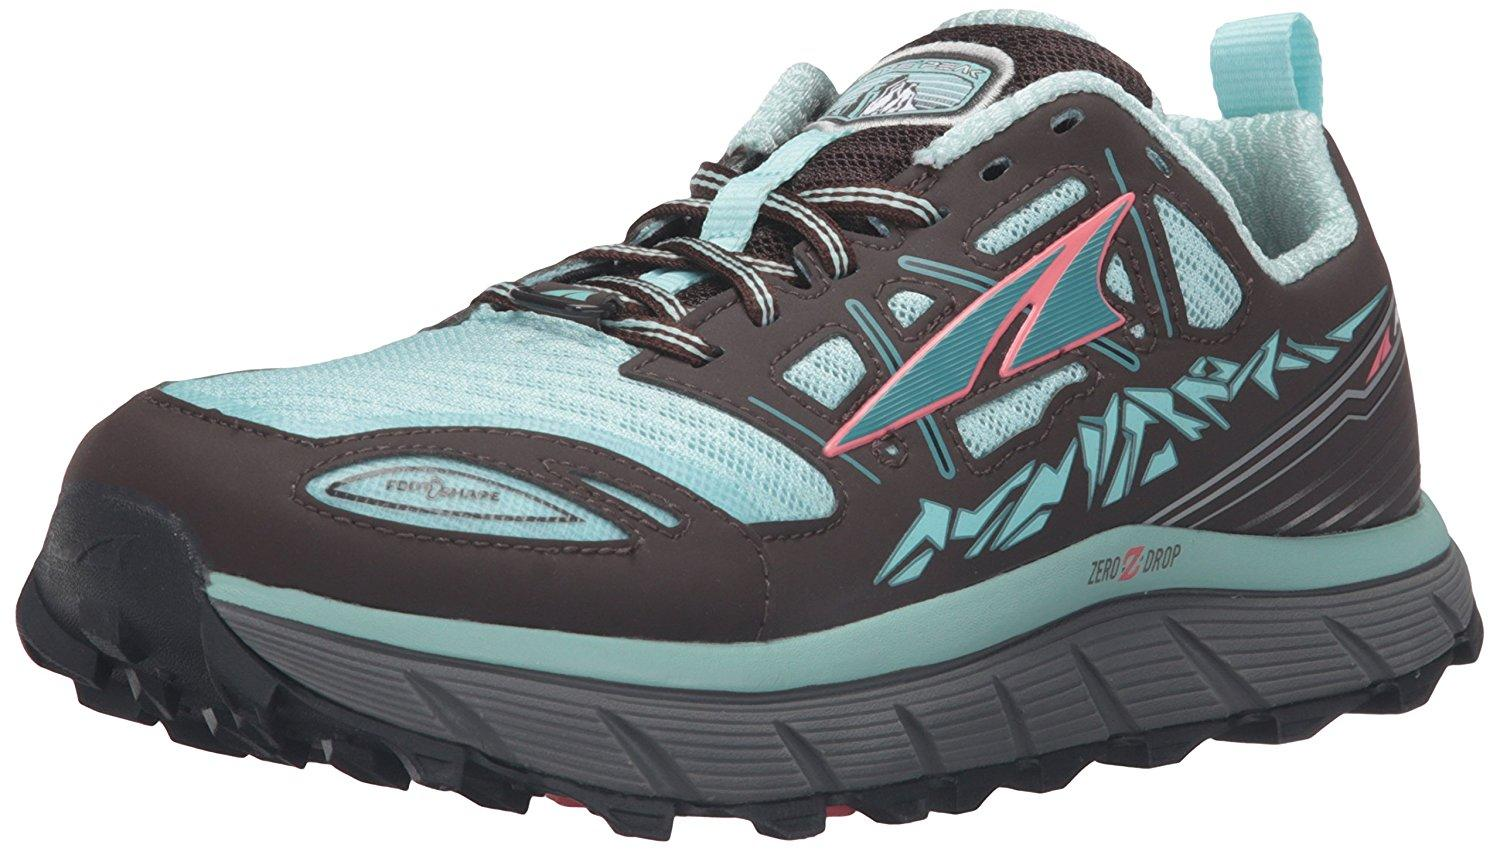 Take a look at the Altra Lone Peak 3.0.